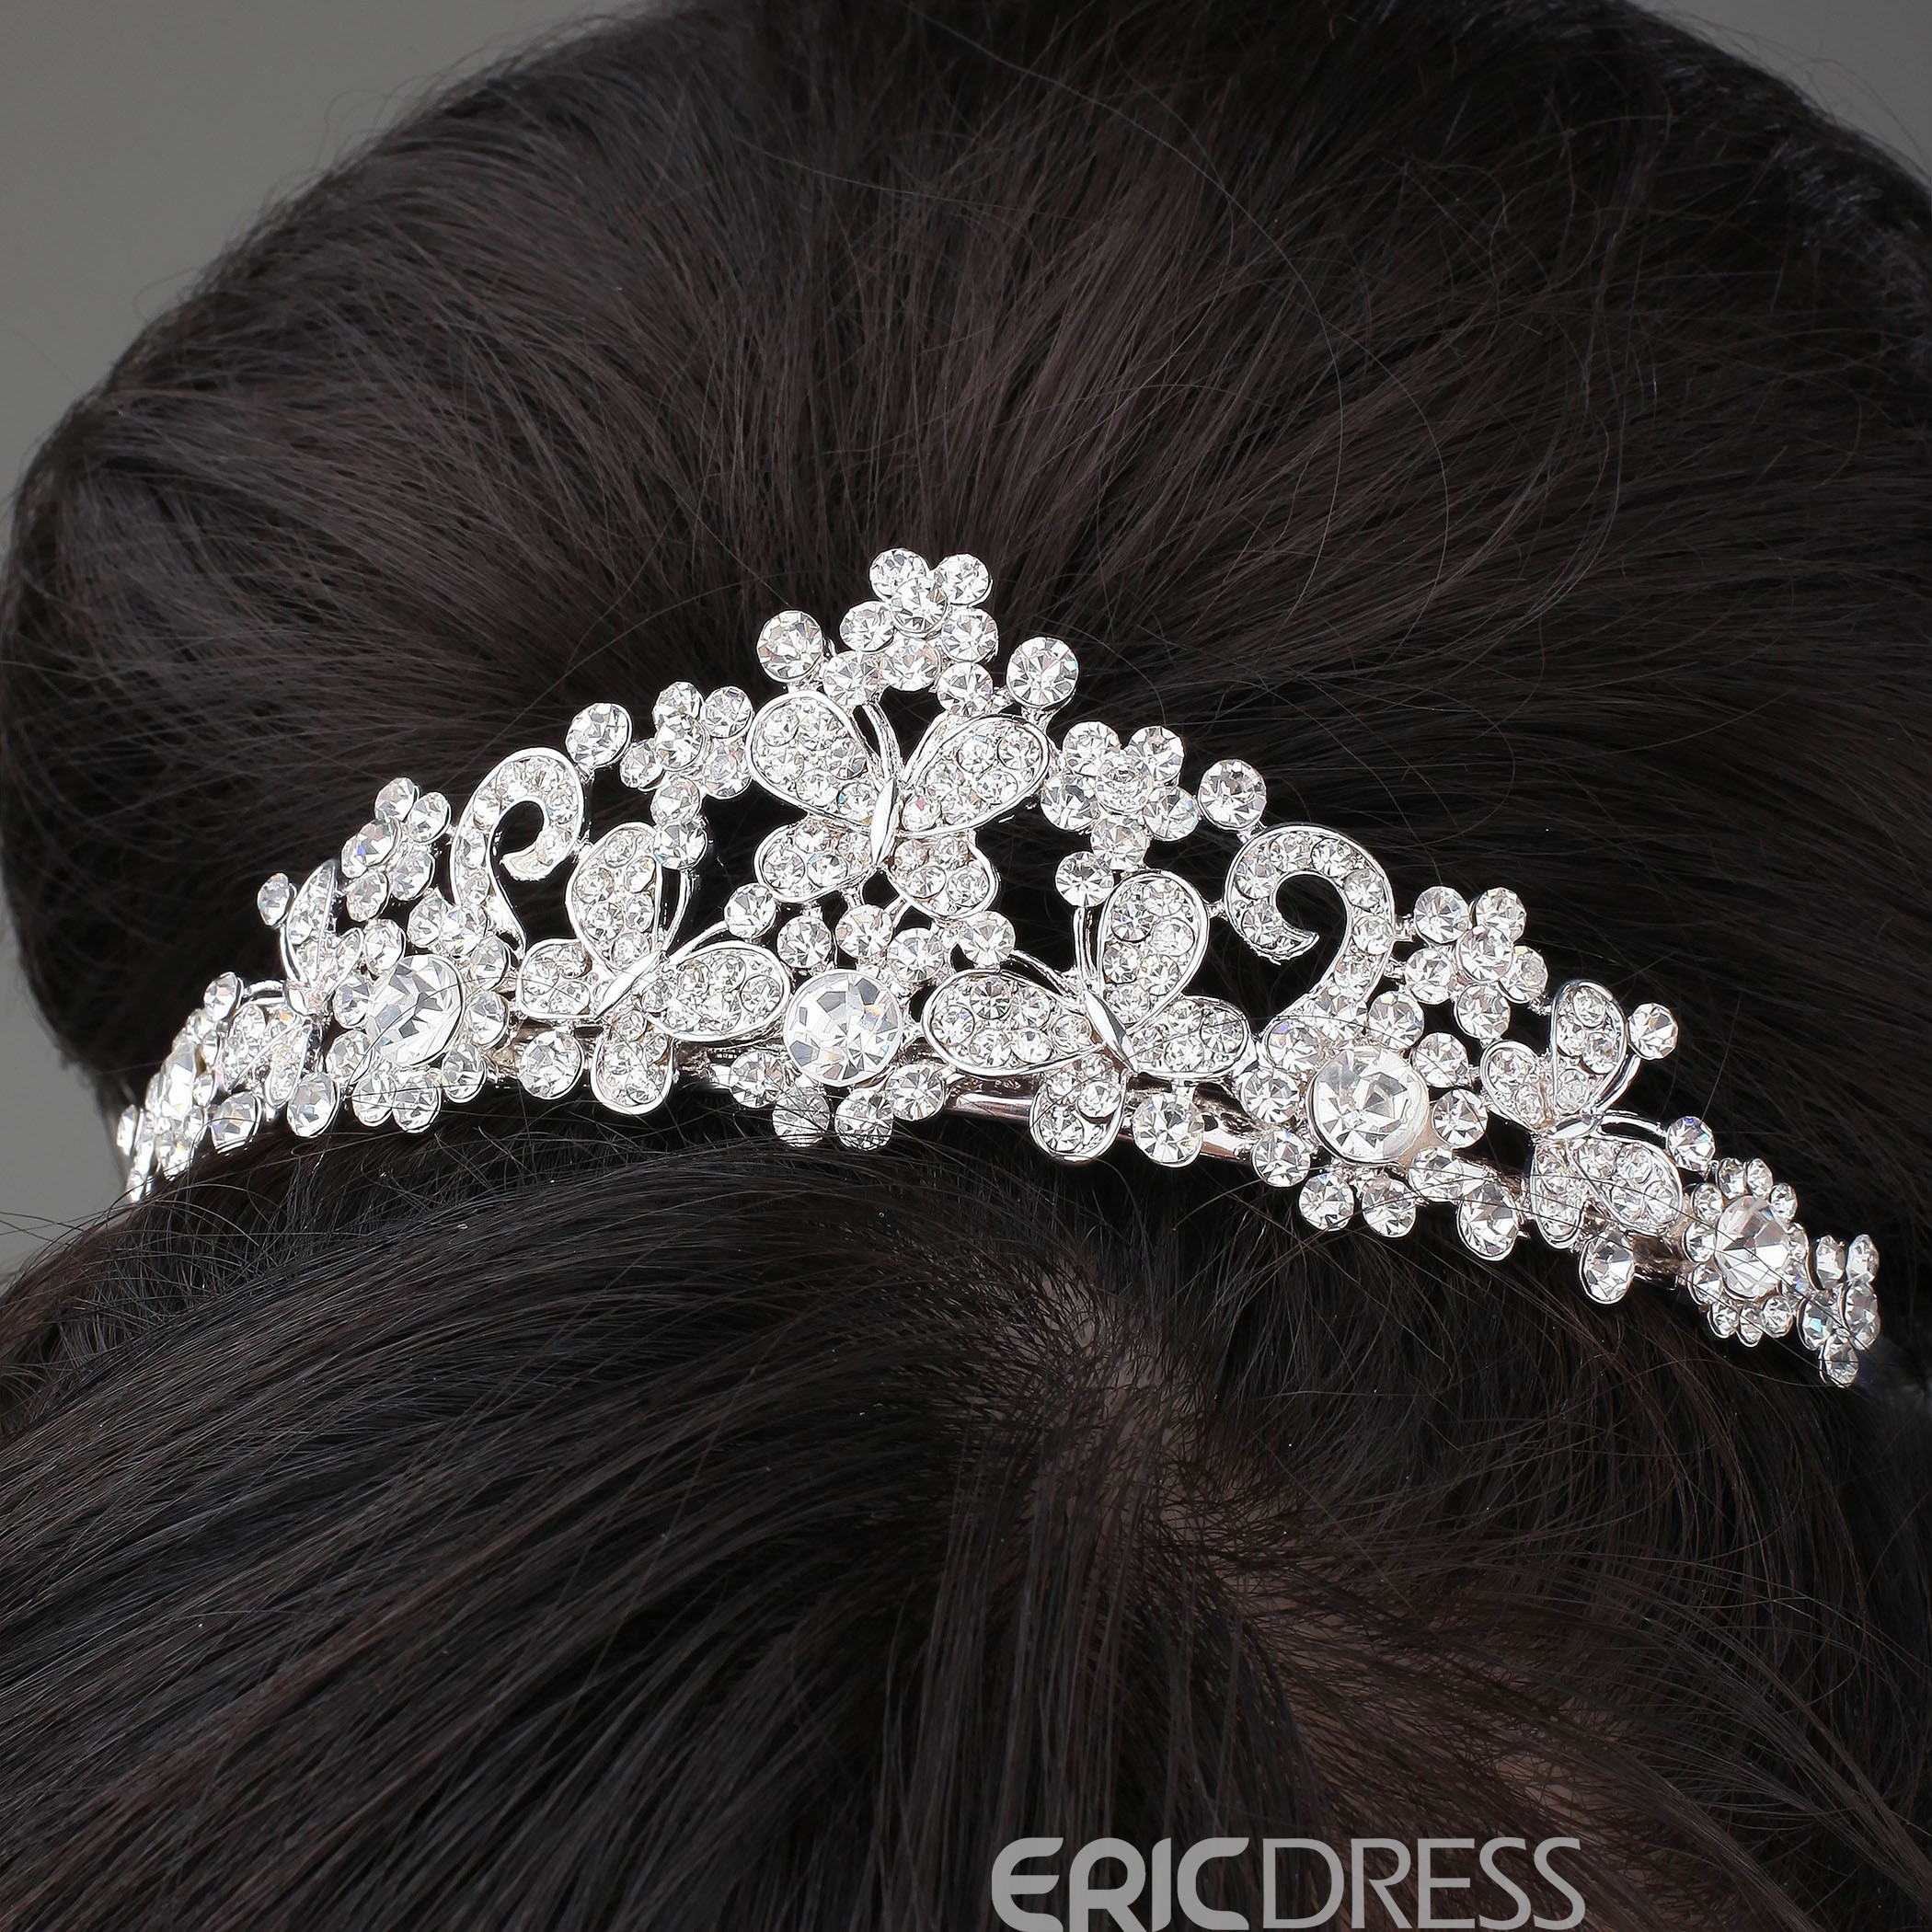 Cute Butterfly Shaped Alloy and Rhinestone Tiara & Headpiece